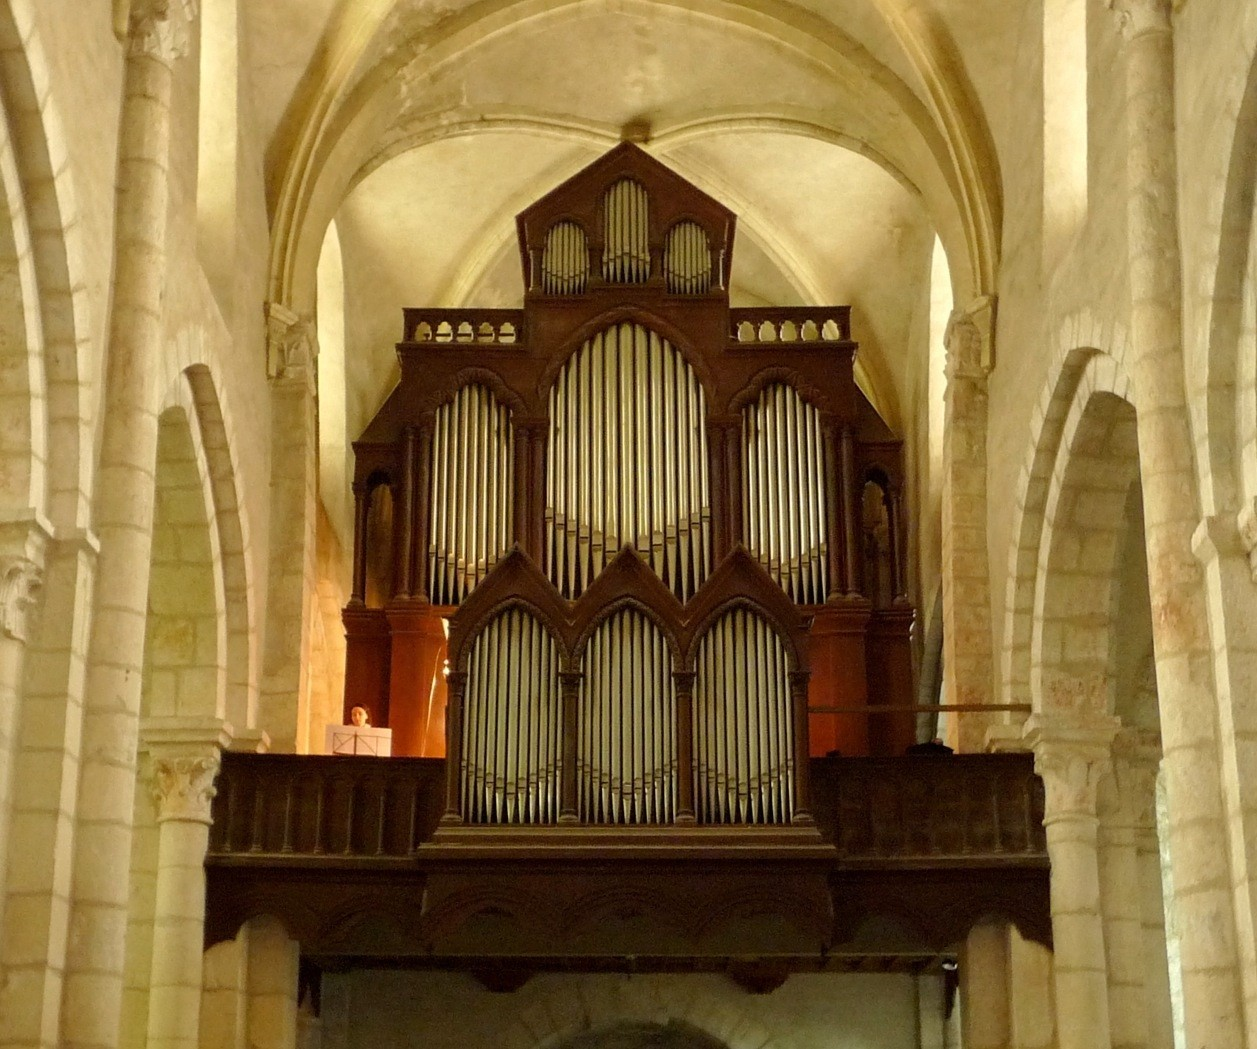 Orgue de l'abbatiale Saint-Michel